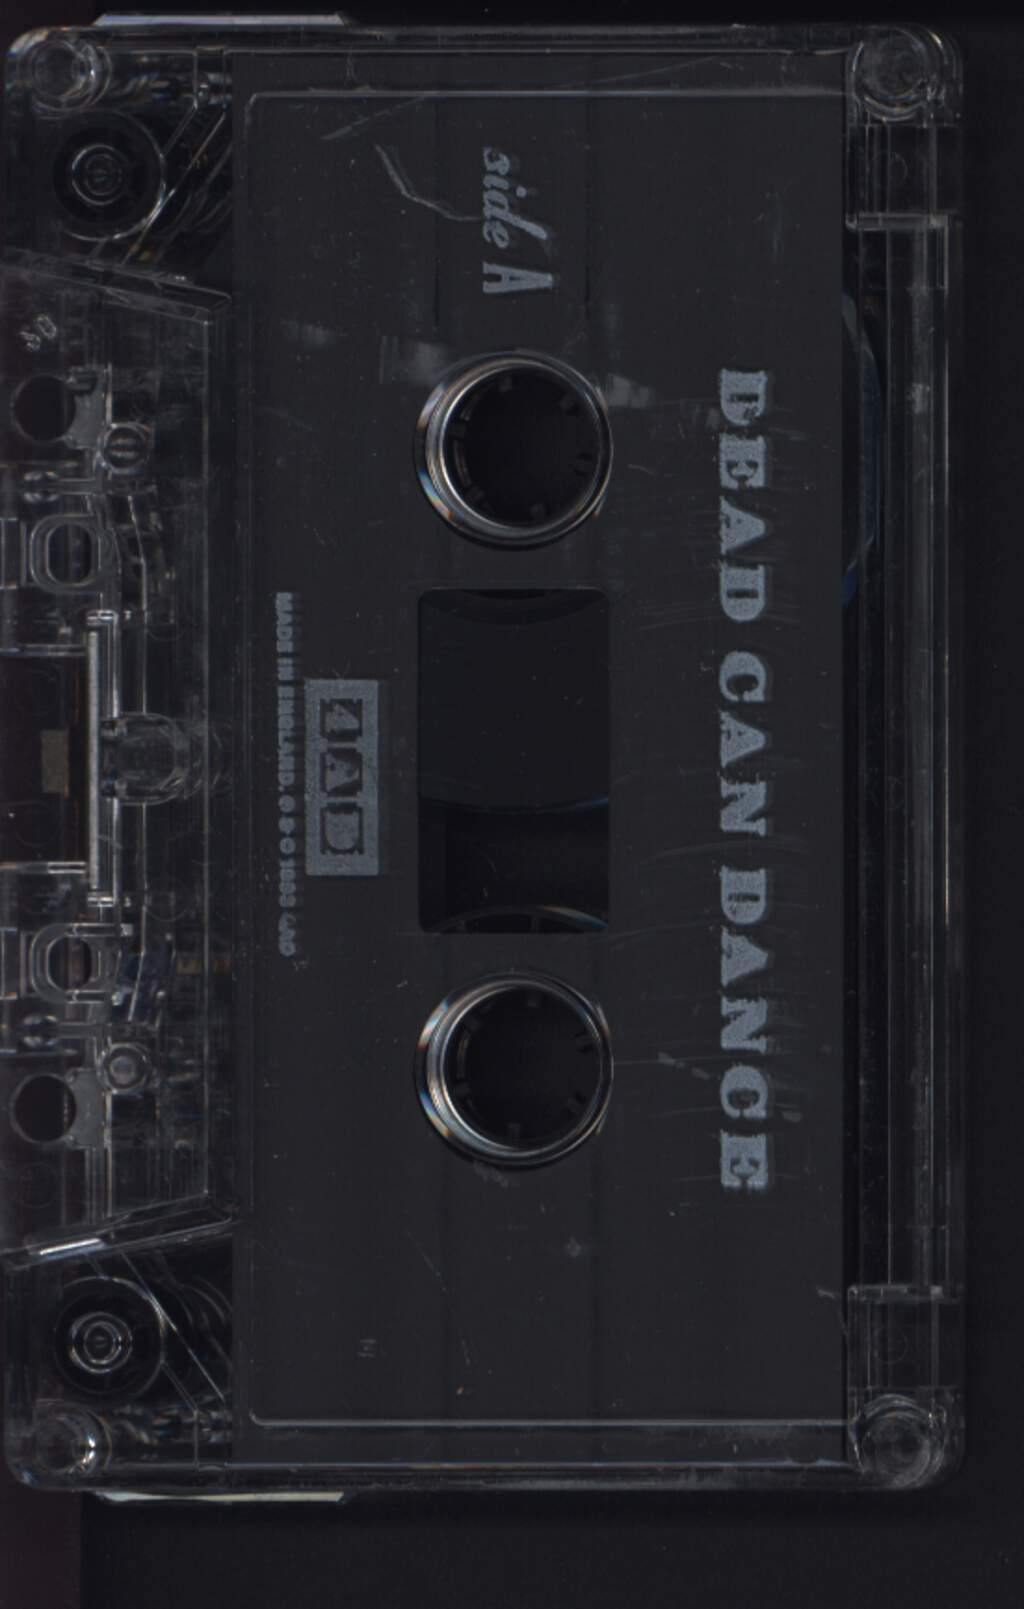 Dead Can Dance: Into The Labyrinth, Compact Cassette